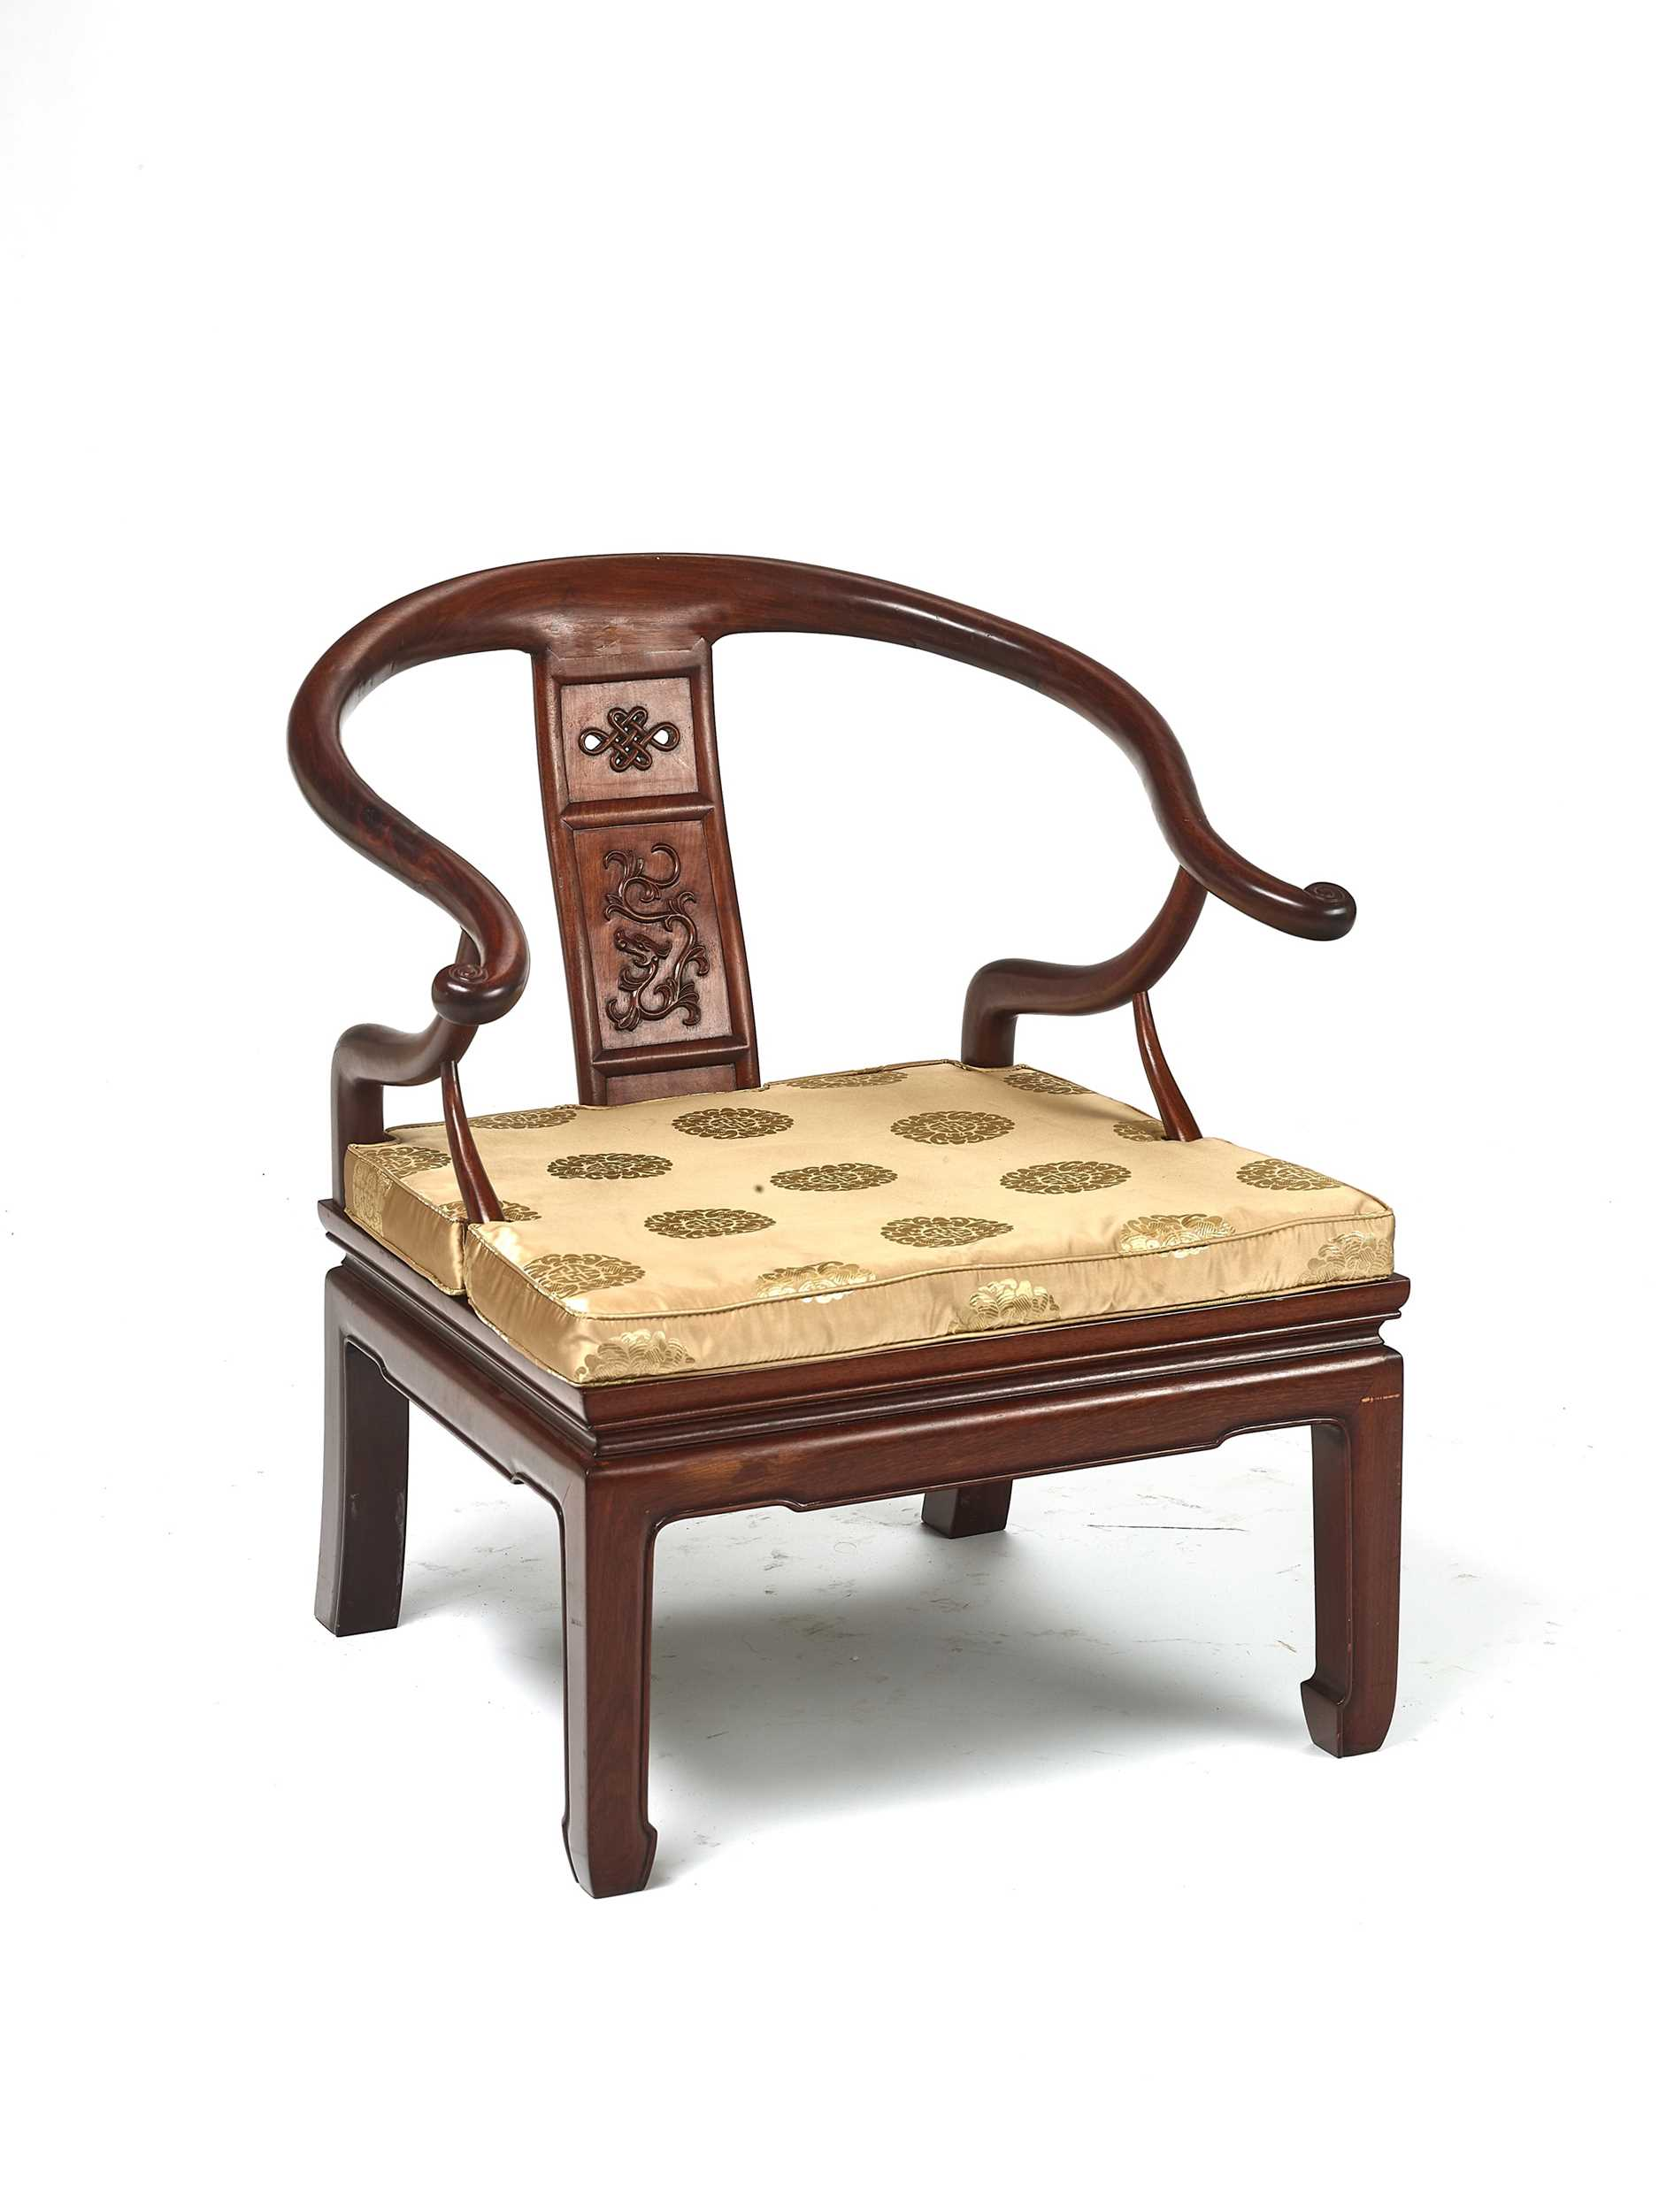 Lot 147 - A CHINESE 'HORSESHOE' LOW CHAIR, LATE QING DYNASTY